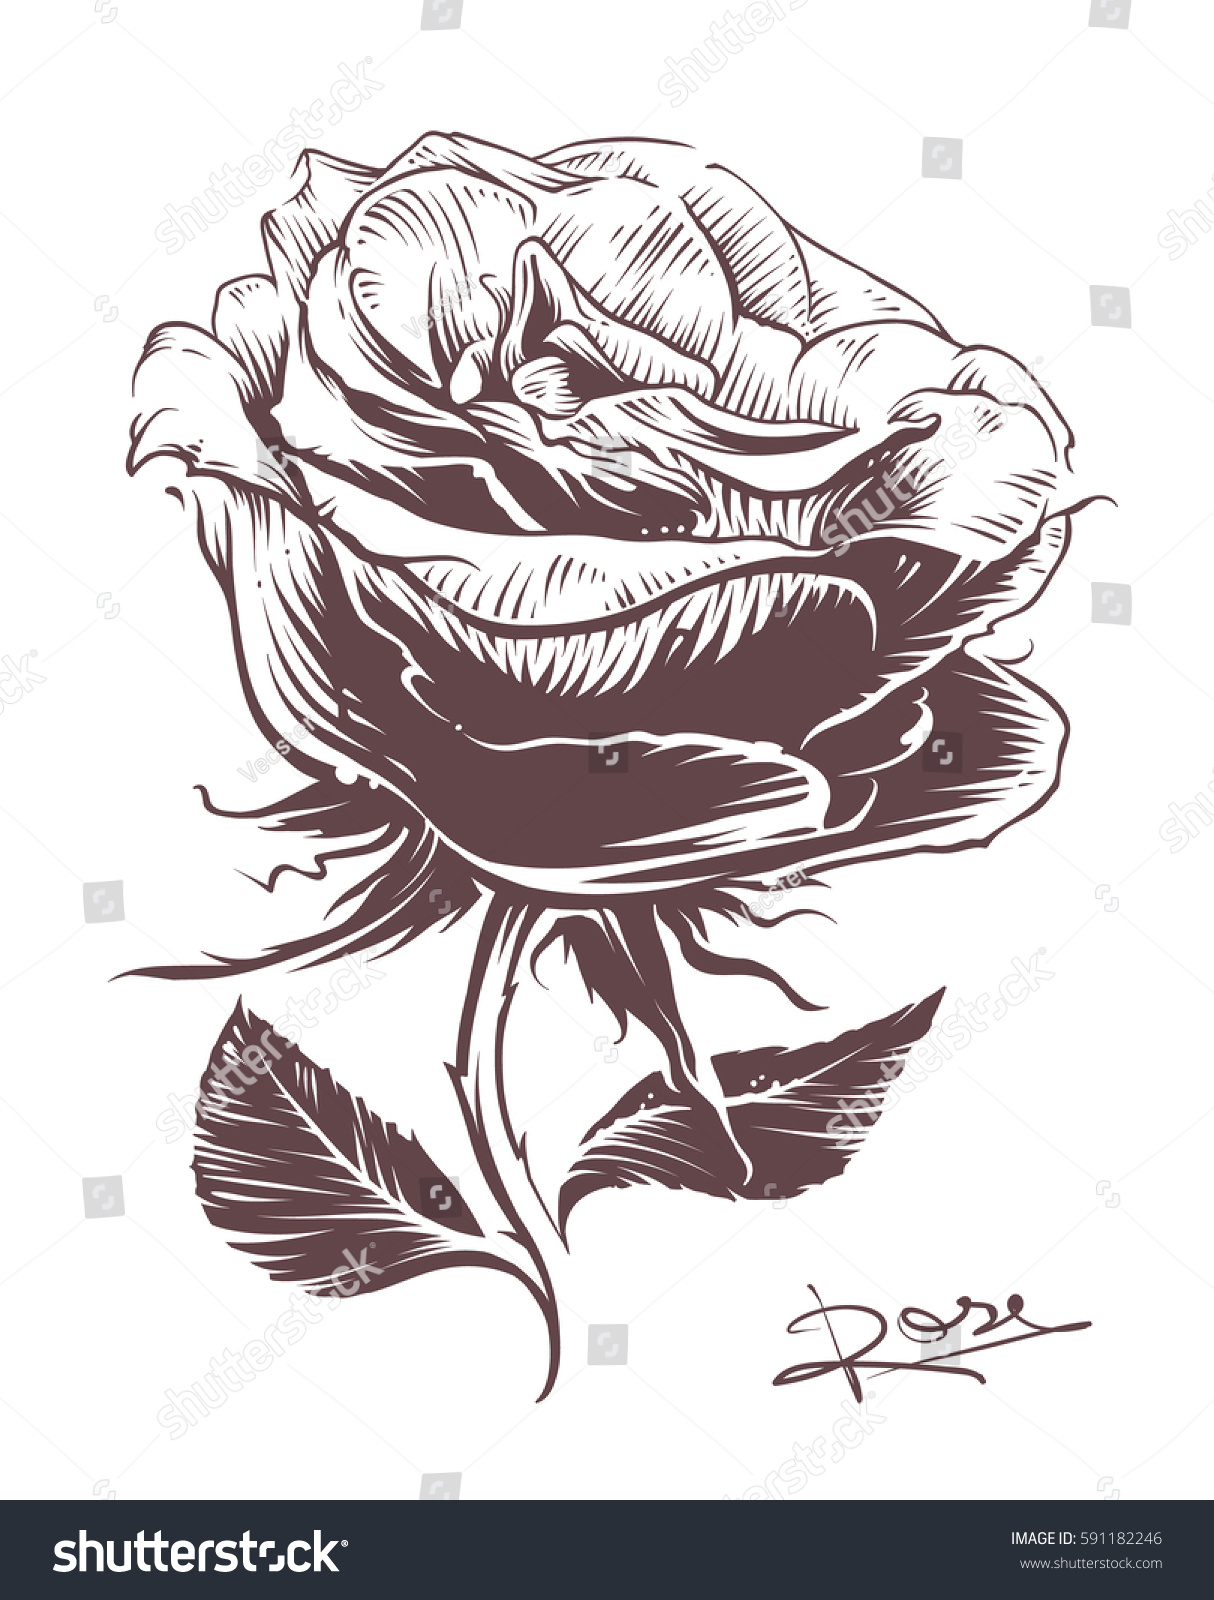 Flower Line Drawing Vintage : Vintage hand drawn rose style stock vector